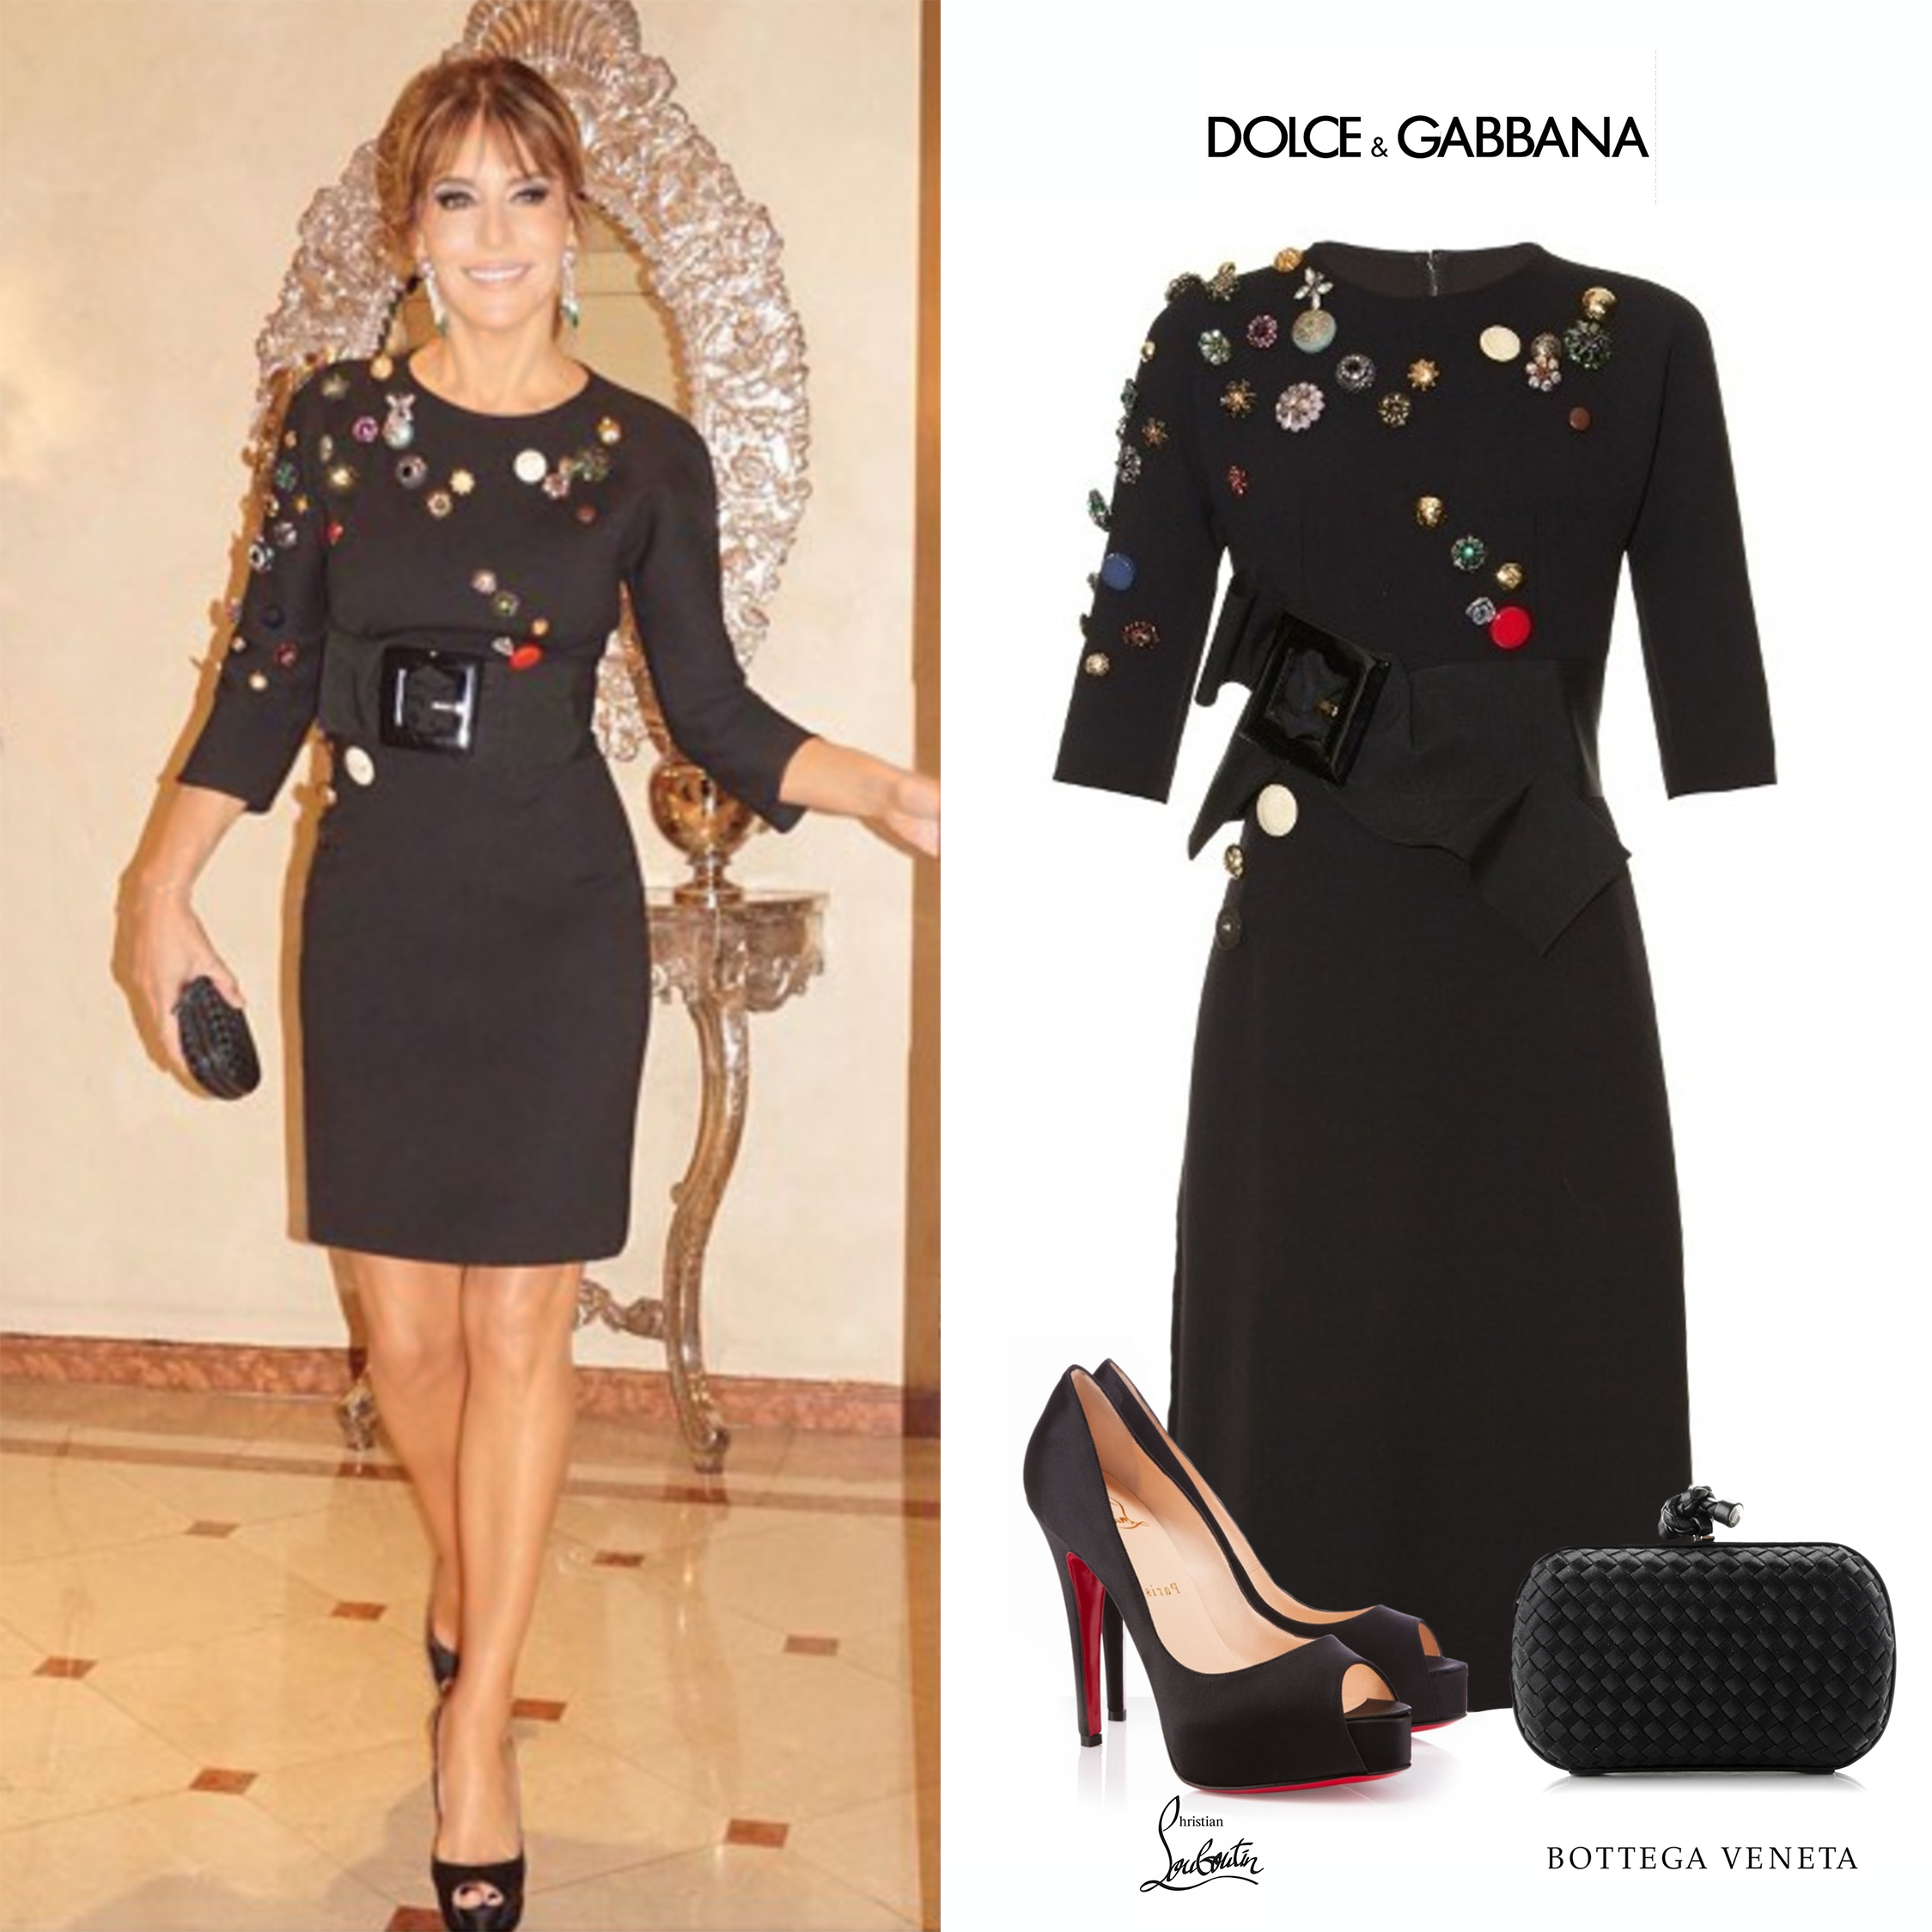 Patricia_della_Giovampaola_Darenberg_Gala_Conciencia_Vestido_Negro_Cristales_Embellished_Detail_Black_Dolce_Gabbana_Dress_Zapatos_Negros_Saten_Christian_Louboutin_Hyper_Prive_Black_Bottega_Veneta_Intrecciato_Knot_Clutch_Buenos_Aires_2018.jpg